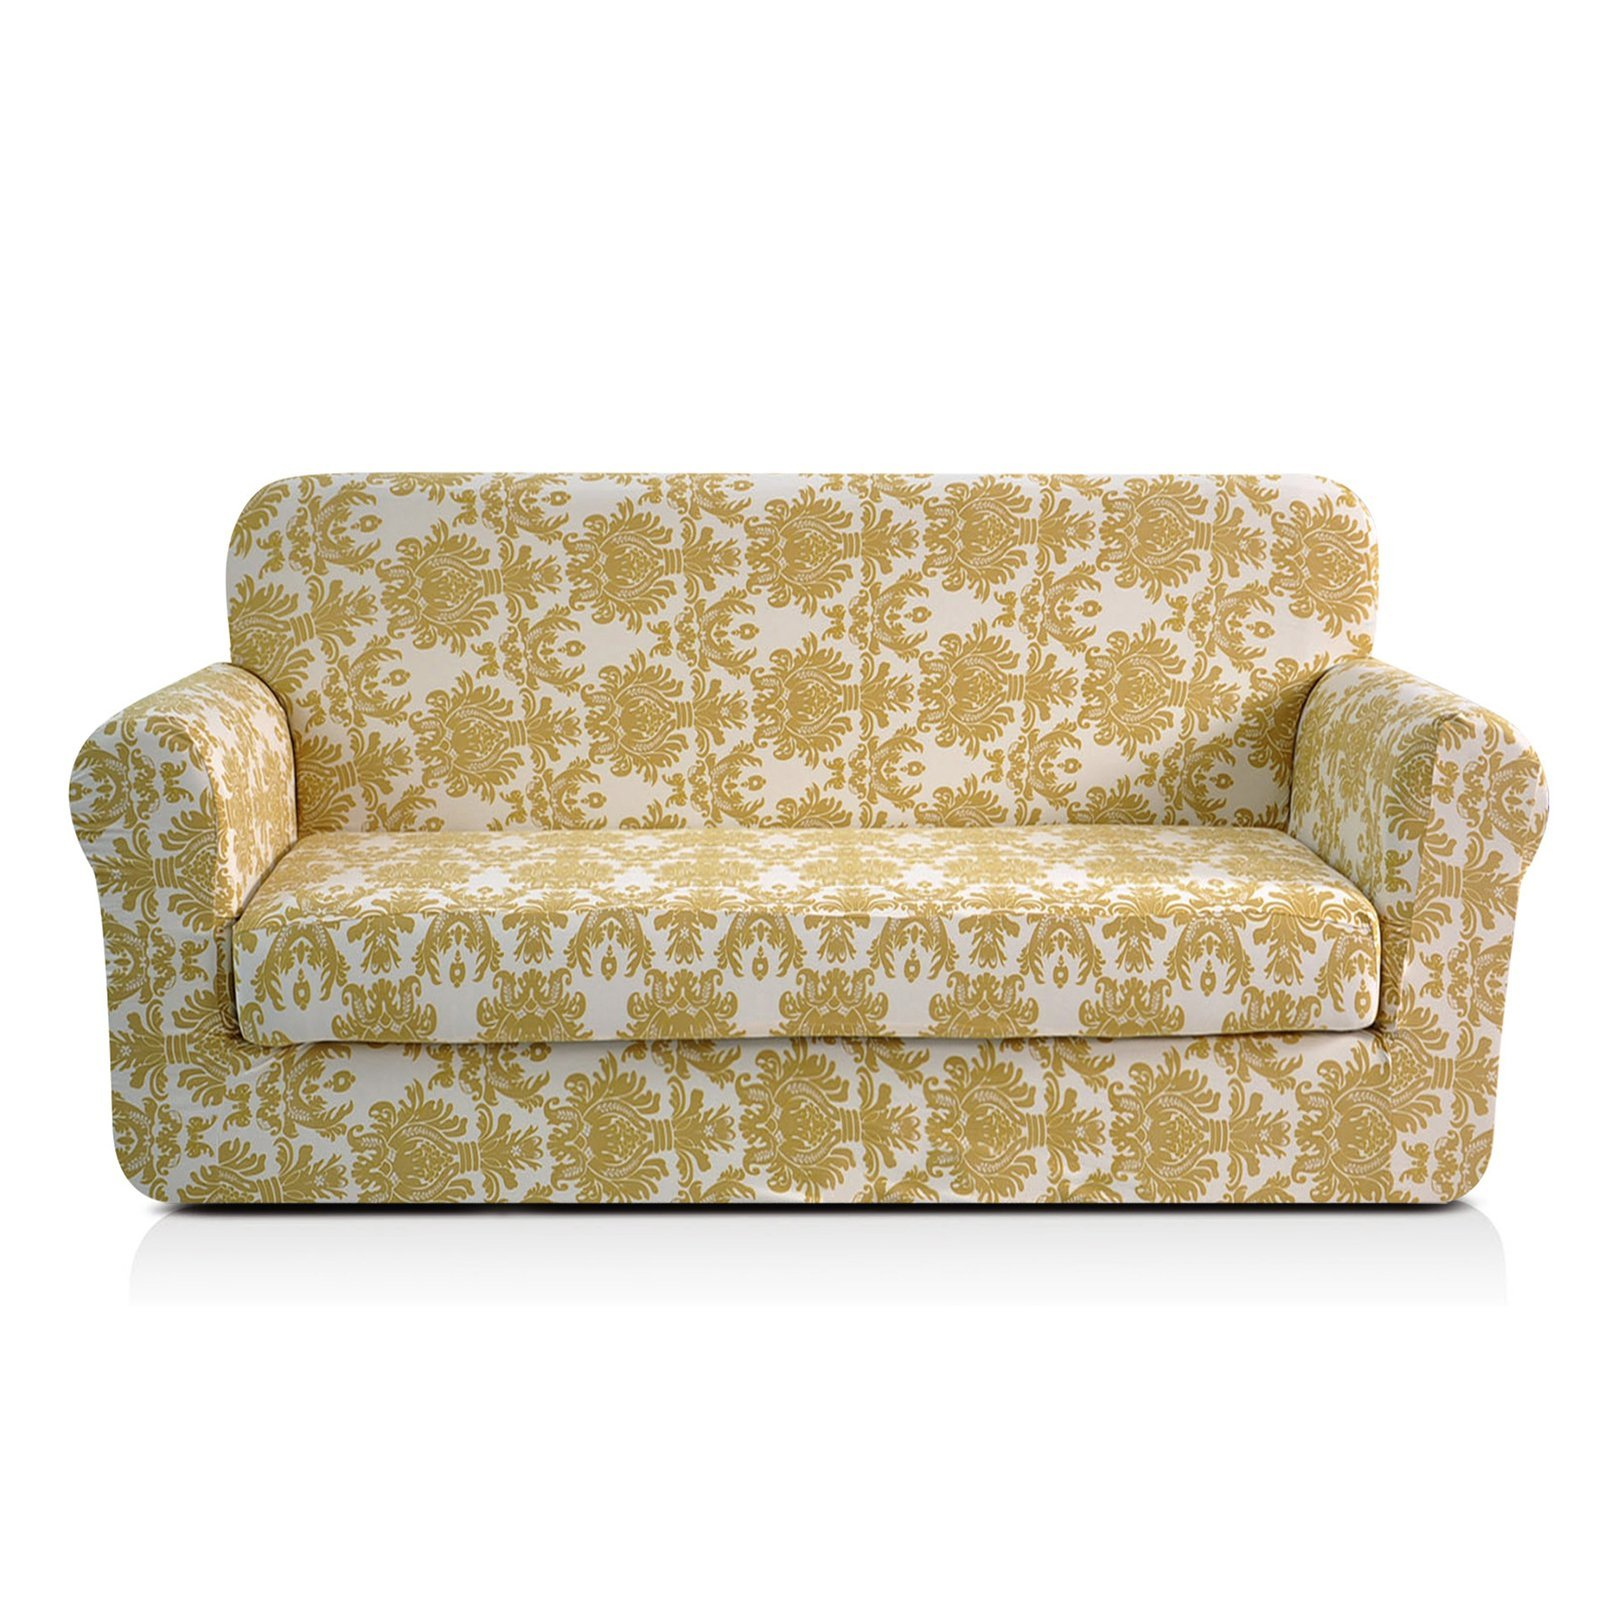 Sofa Slipcovers On Amazon: Floral Covers For Sofas And Loveseats: Amazon.com